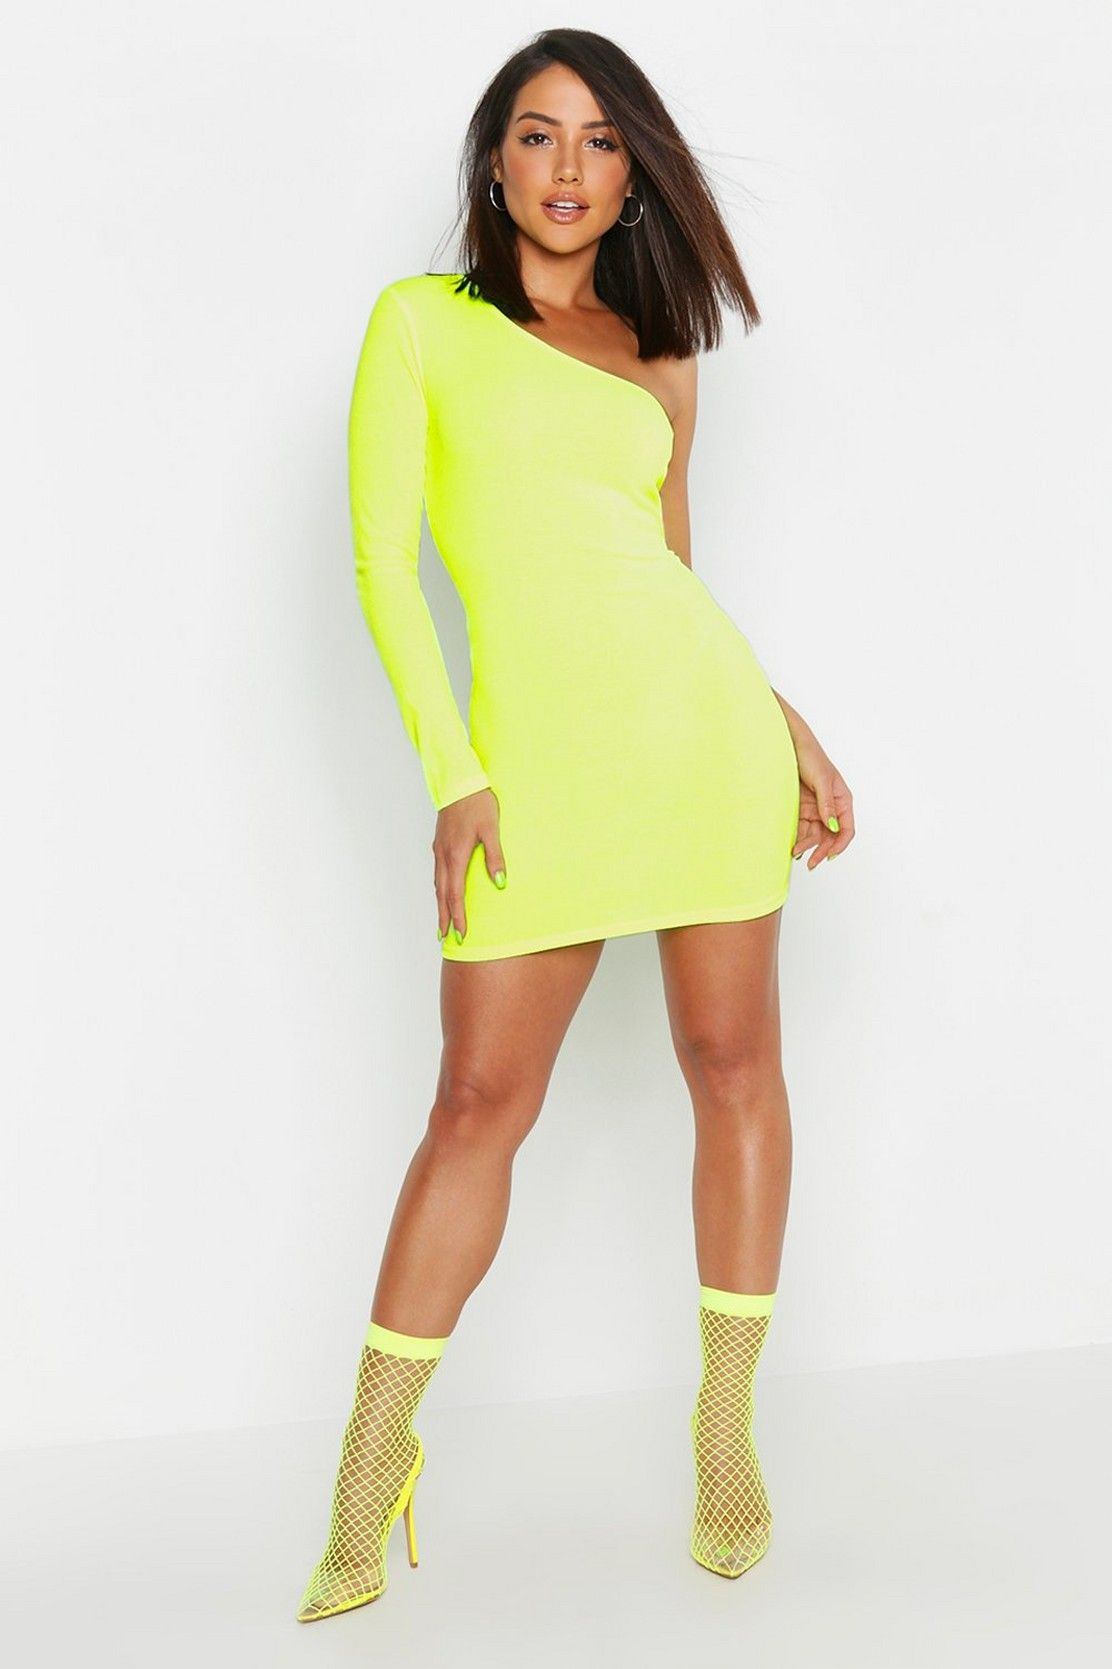 5f1be5260d Neon Rib One Shoulder Bodycon dress in 2019 | TREND REPORT FEB 2019 ...